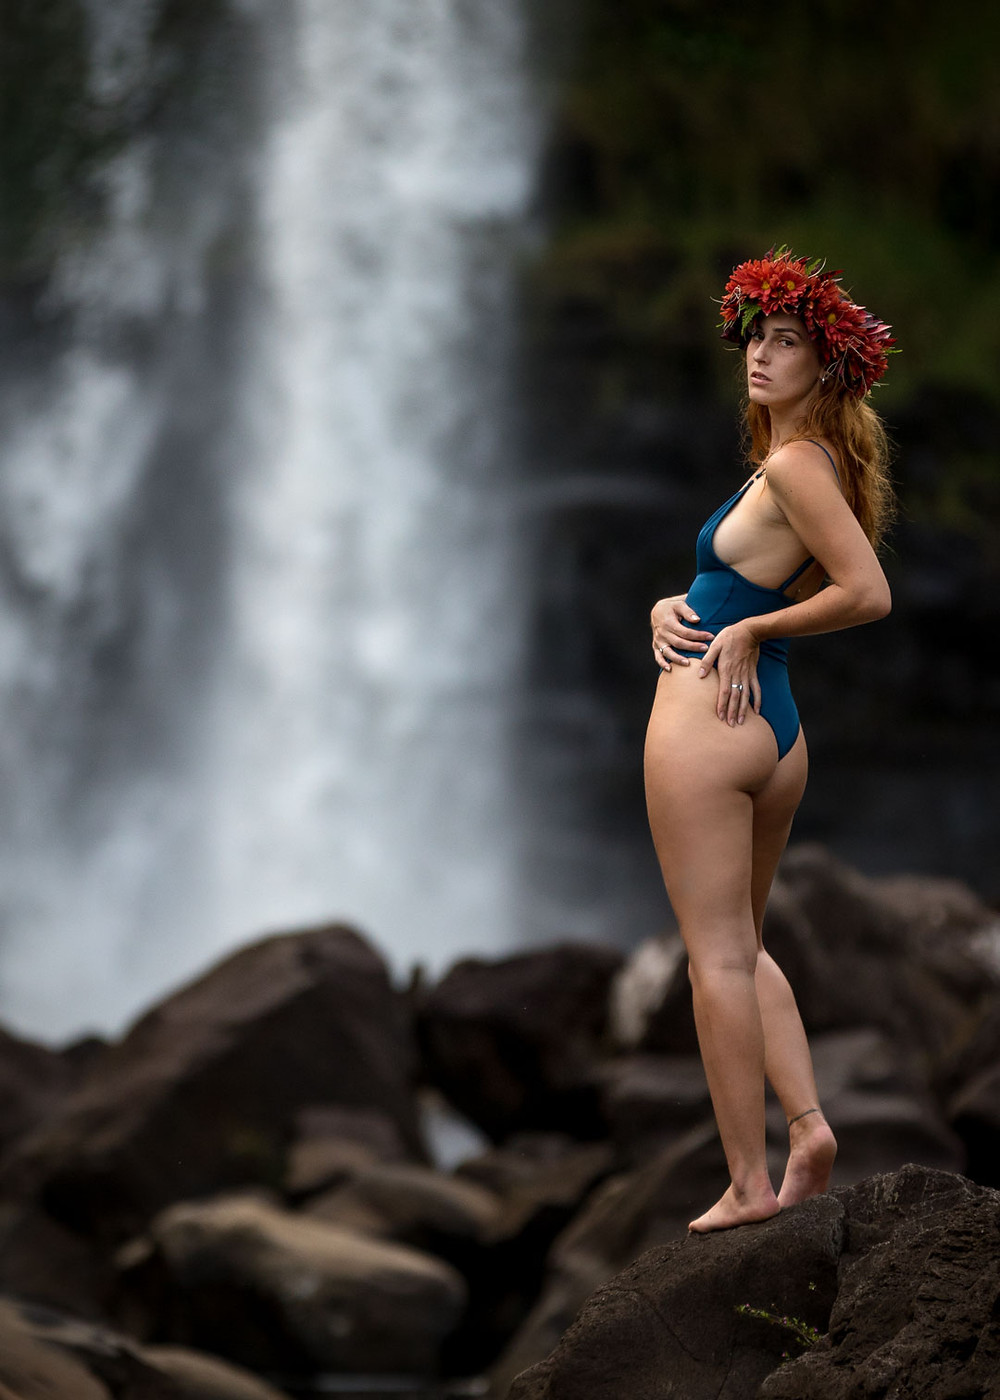 Evelyn in Swimsuit on the Wailuku River Hawaii